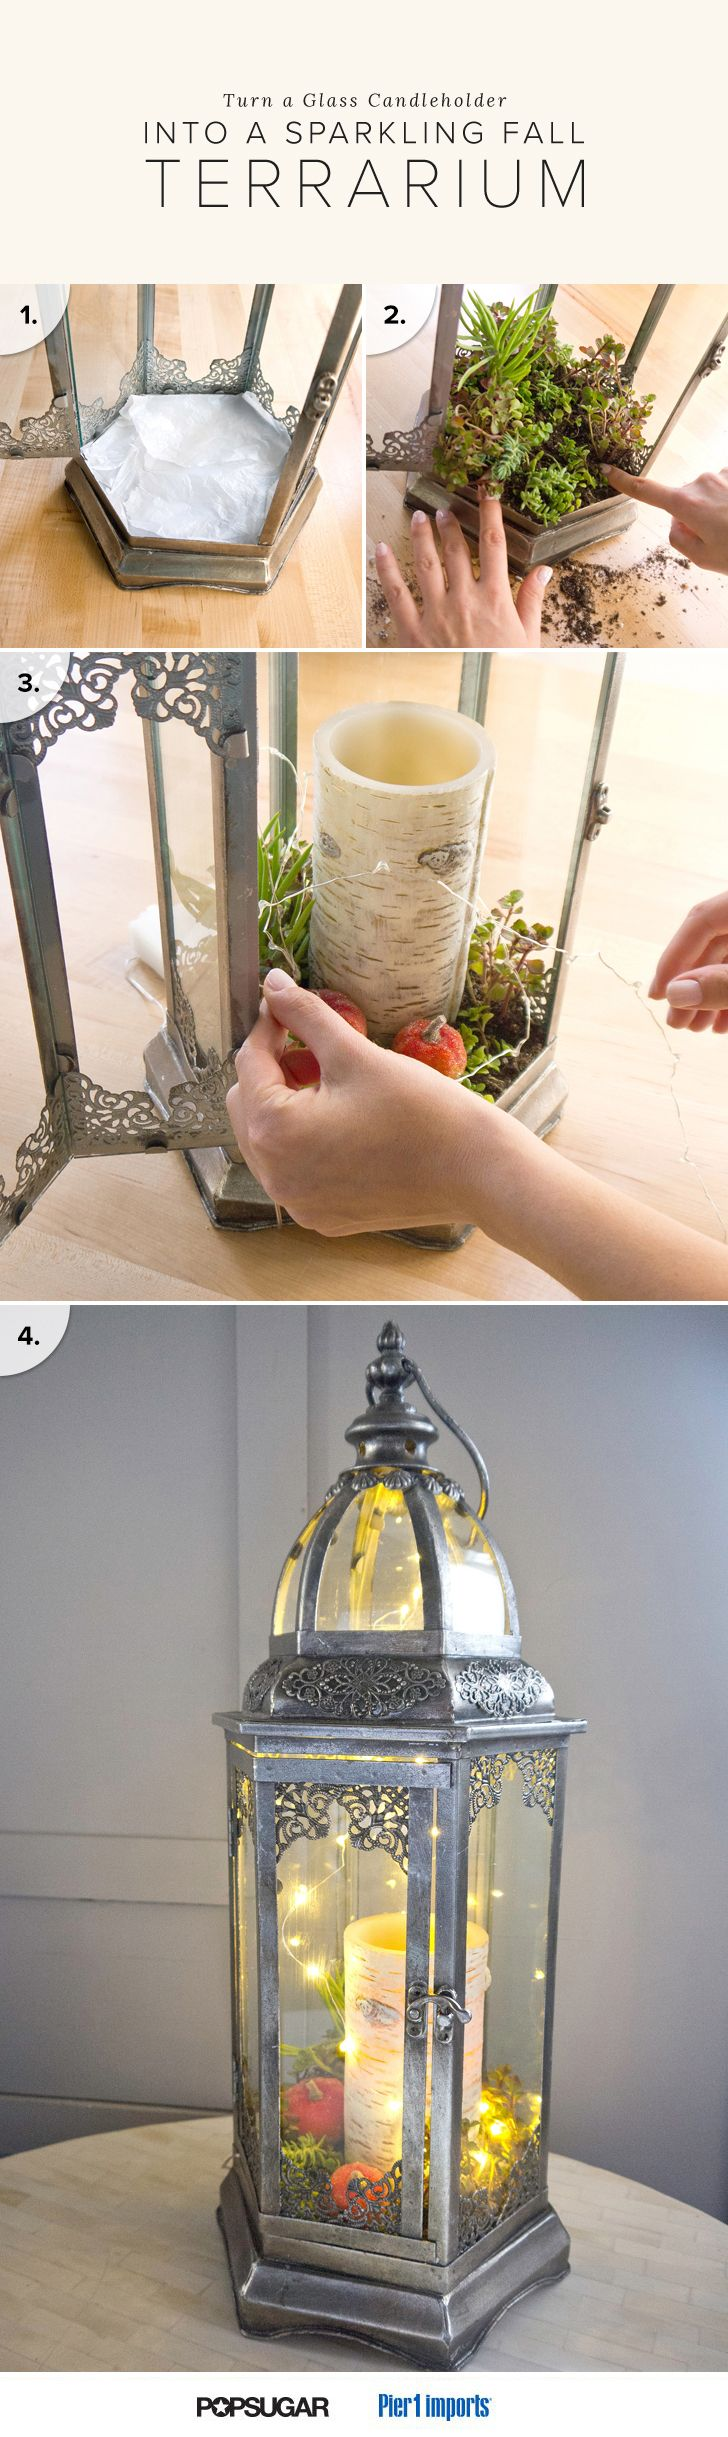 Using a lantern as the base for a terrarium makes for stunning Fall decor.